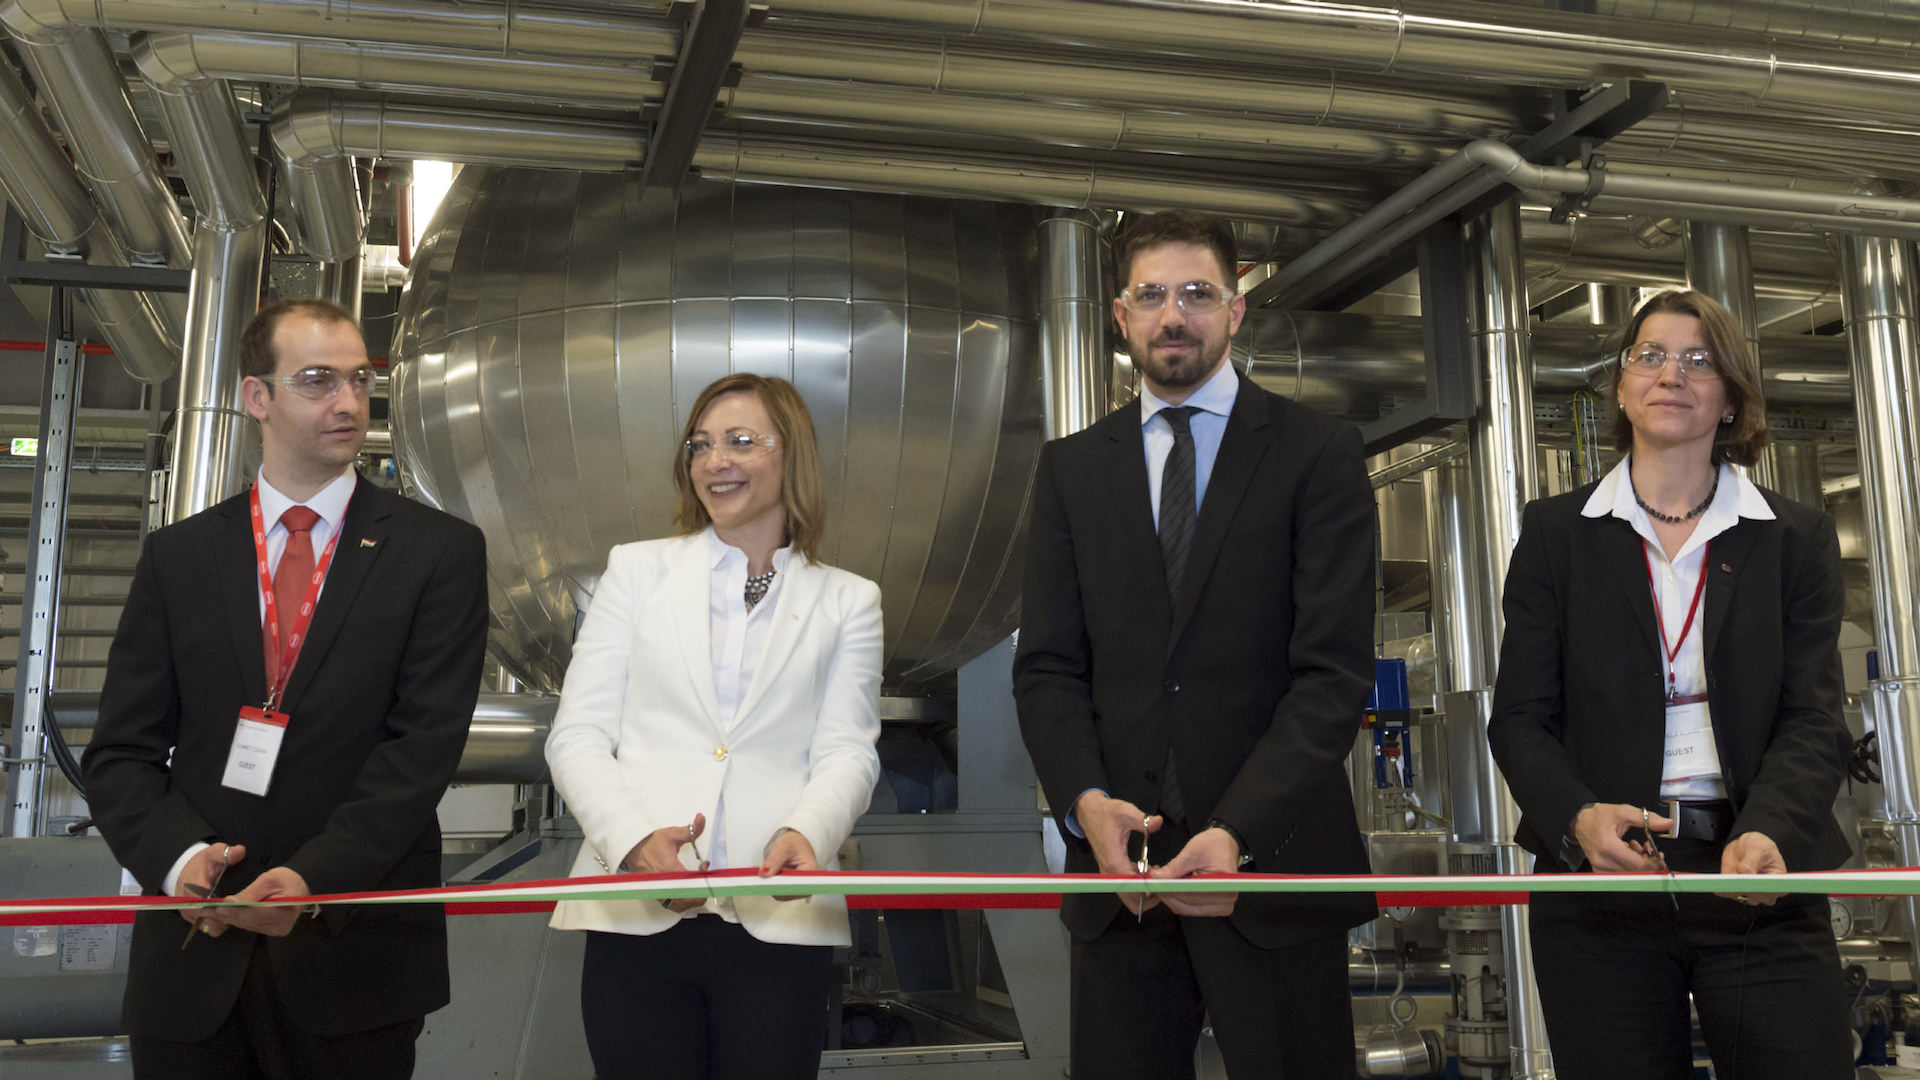 , they opened a new, innovative hot-melt manufacturing unit in Környe, MAGYAR Levente MFAT, Dr. FÁBIÁN Ágnes Henkel